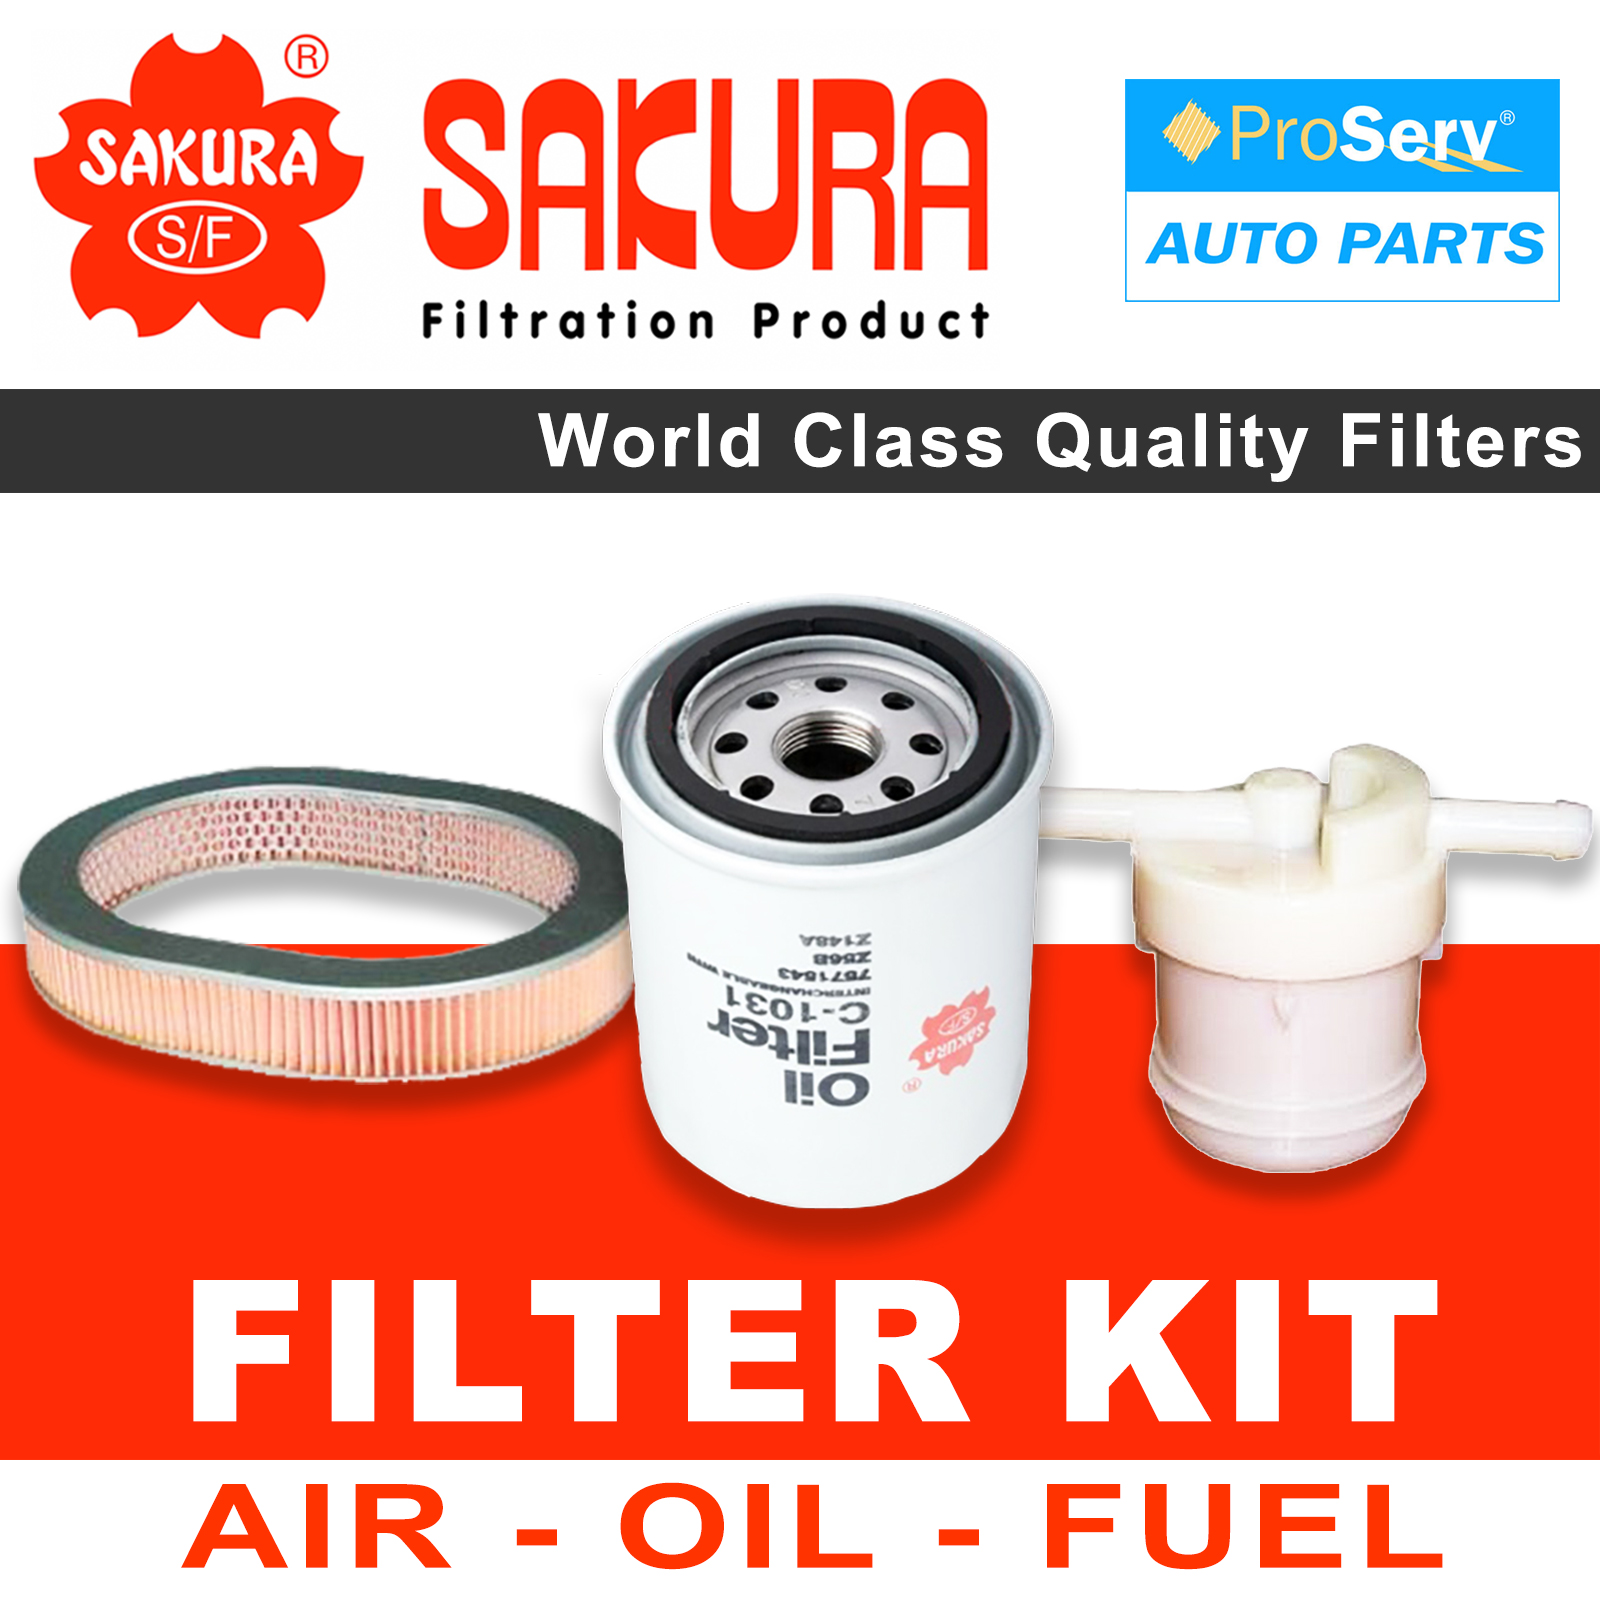 hight resolution of oil air fuel filter service kit for honda civic ef 1 3l 1987 1991 sakura filters